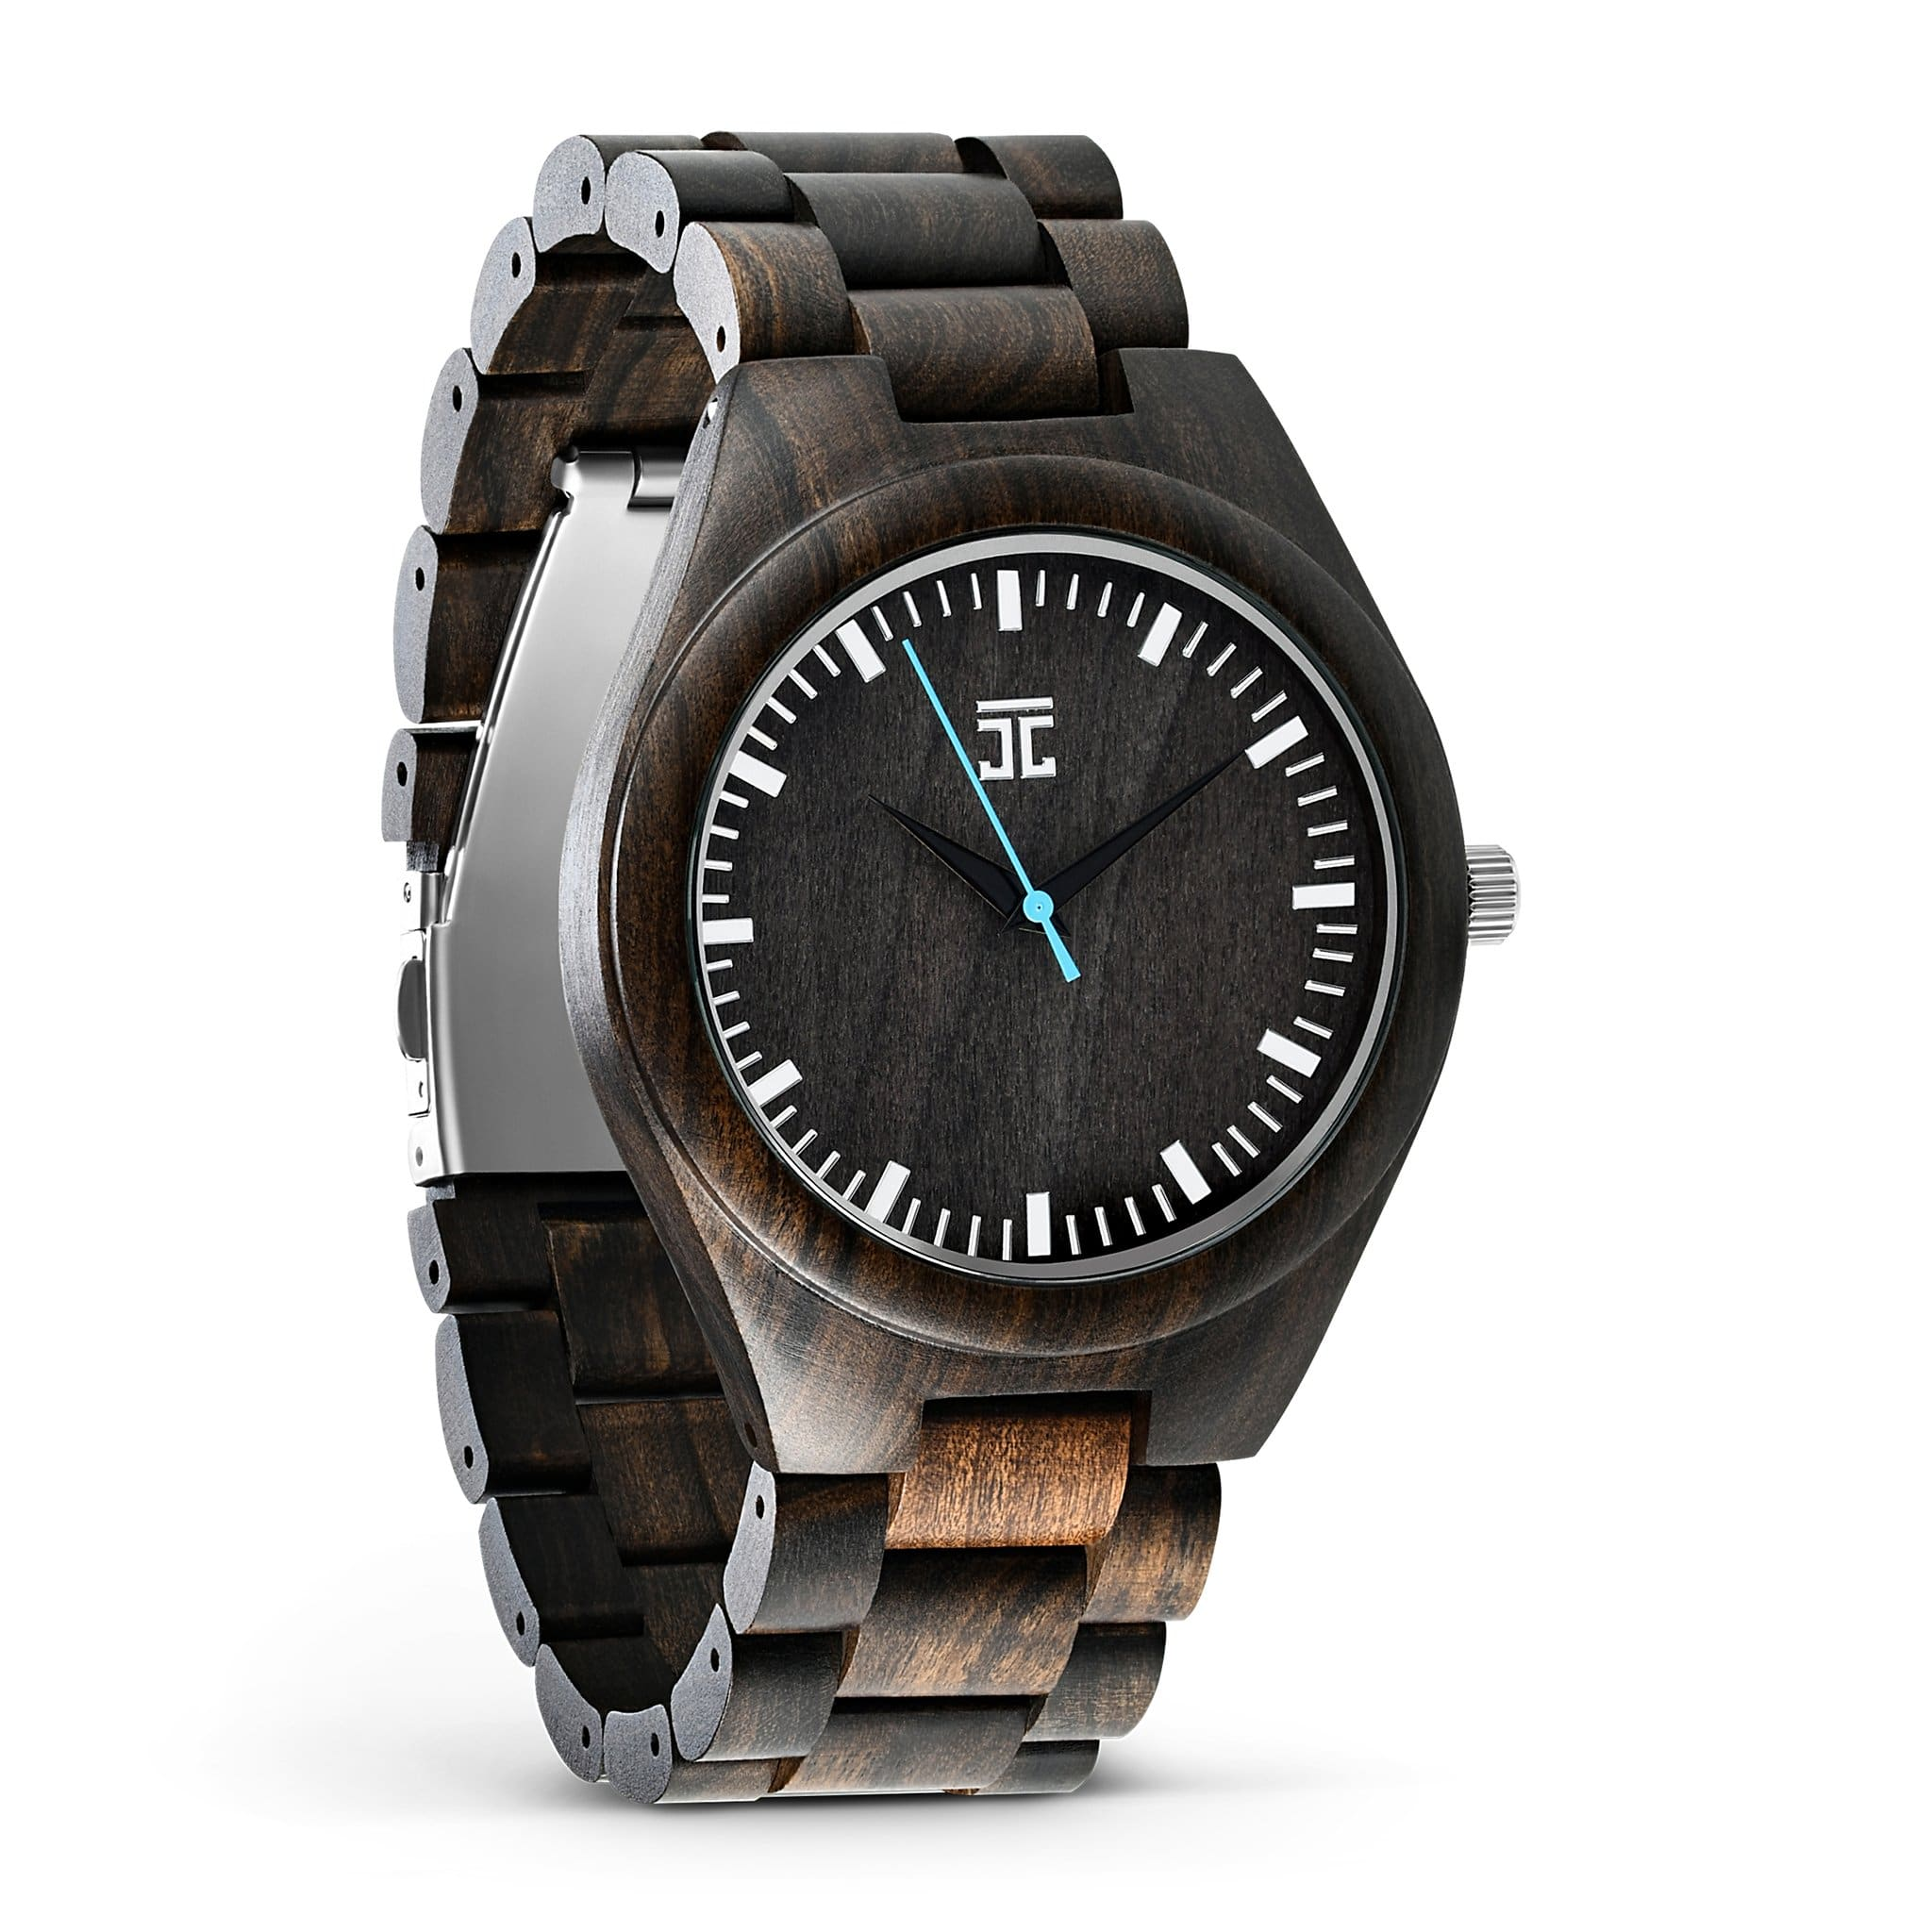 Blue Havana - Wooden Watches and Sunglasses - Joycoast